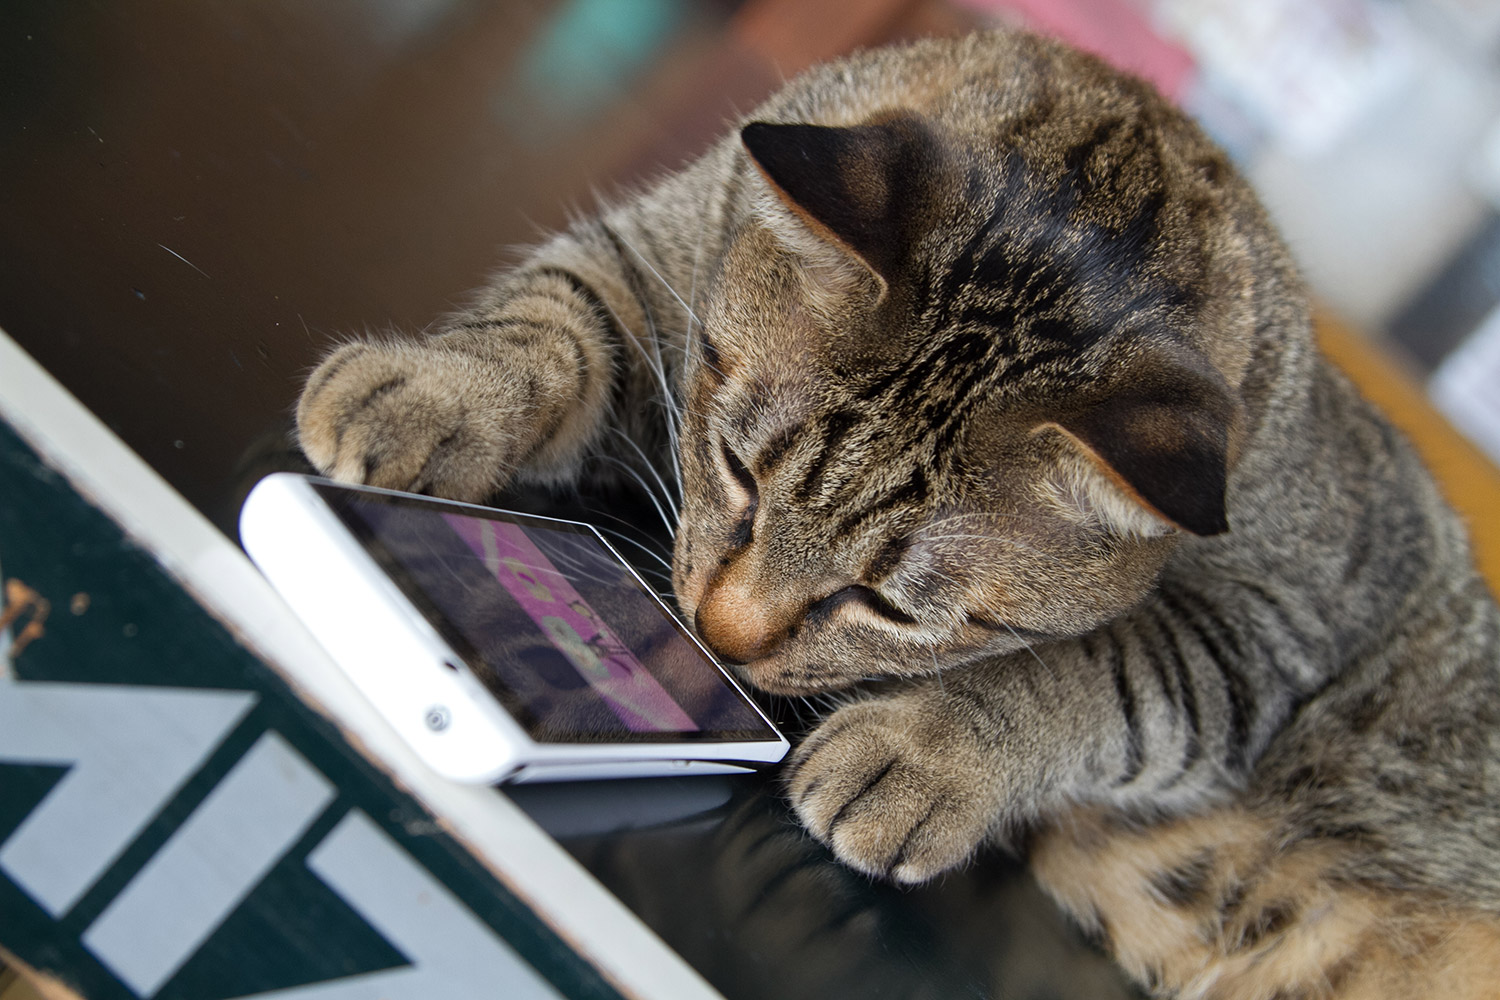 Cat touch the smartphone